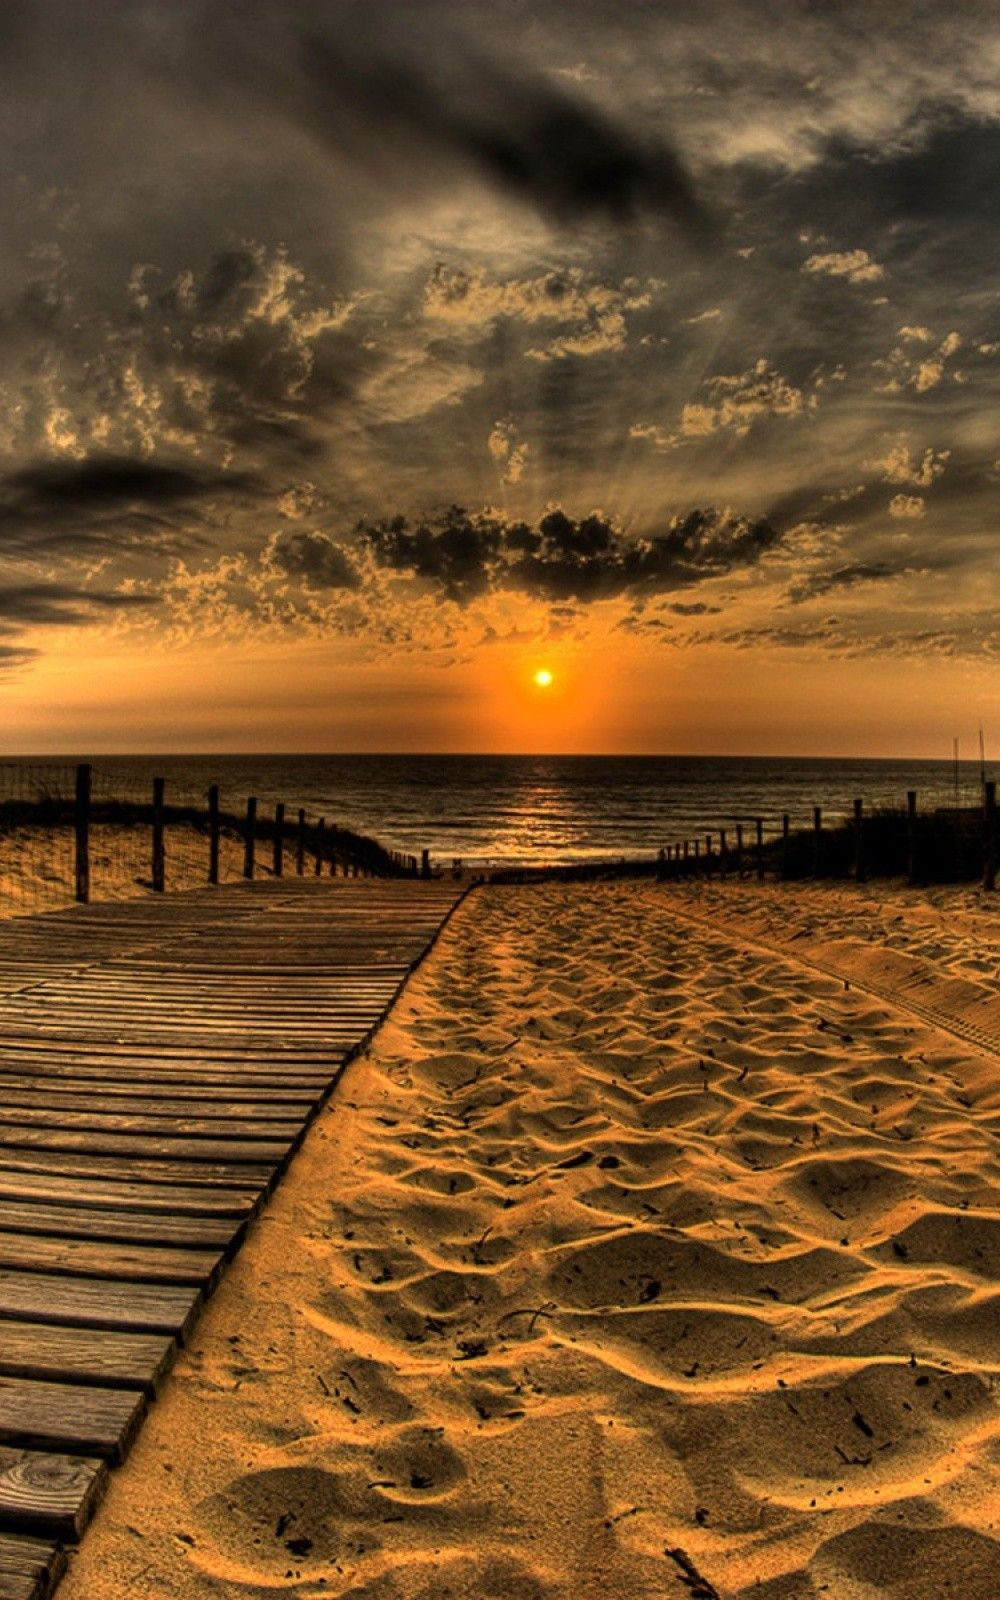 Nature Iphone 6 Plus Wallpapers Wooden Path Sea Sunset Sand Iphone 6 Plus Hd Wallpaper Ideias De Paisagismo Fotografia Da Natureza Lindas Paisagens